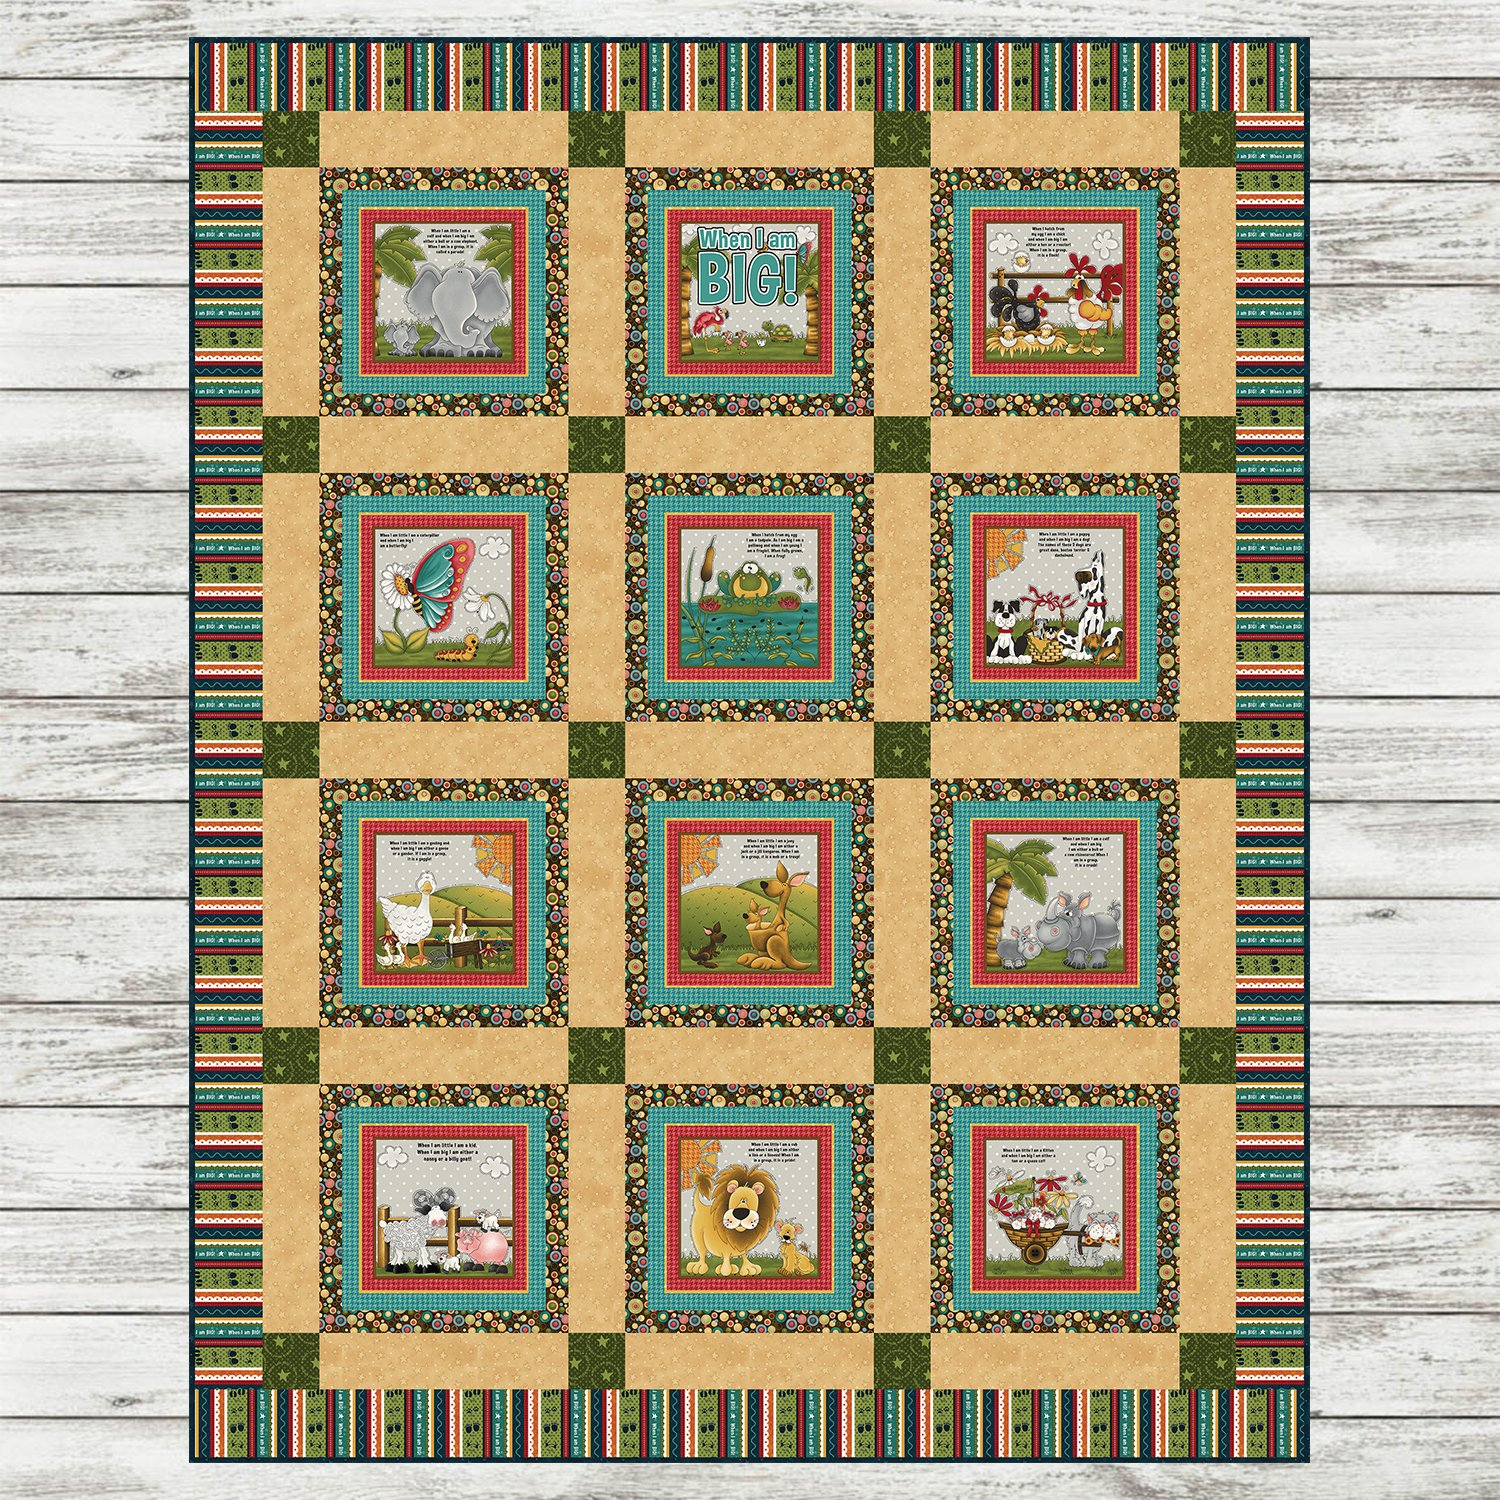 When I am BIG - Book Quilt Kit - Green Version